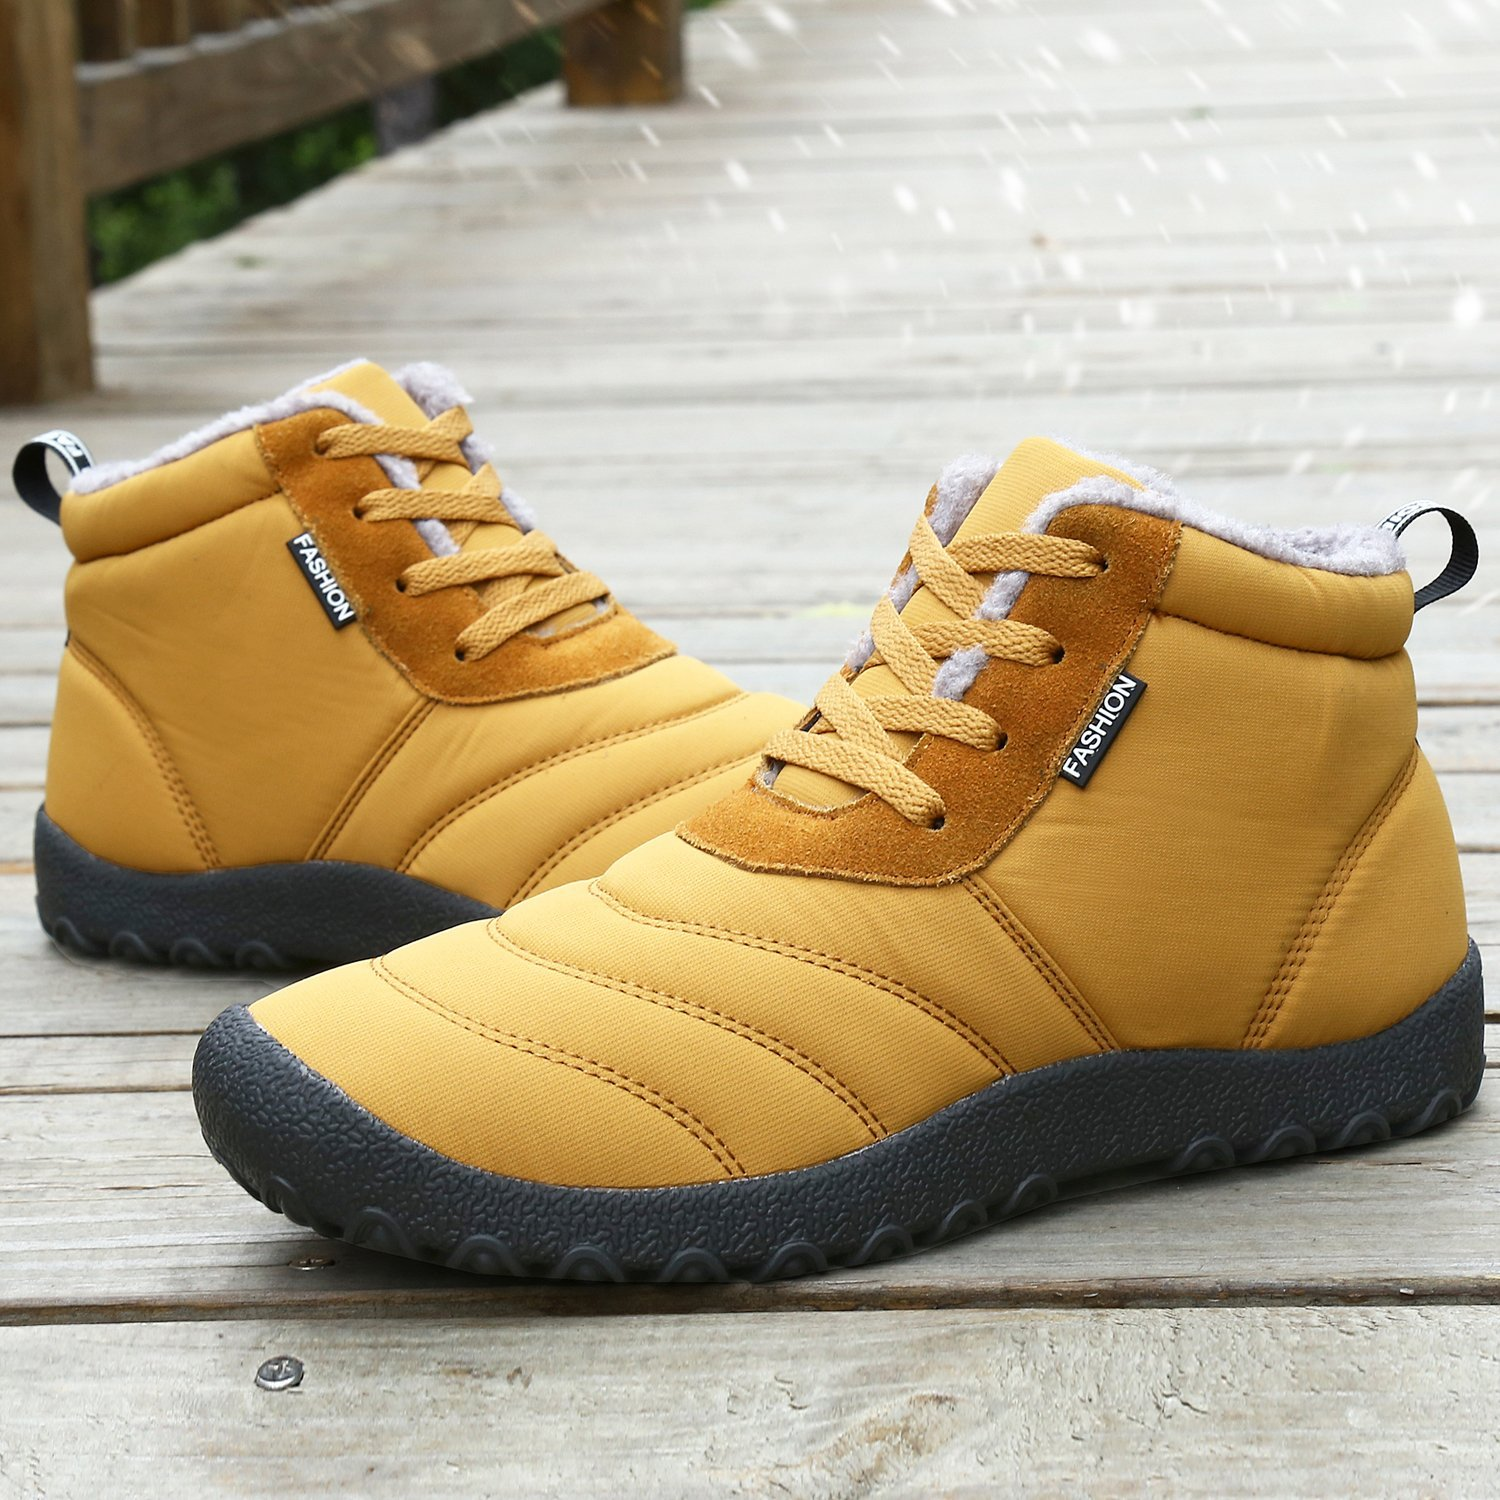 Dreamcity Mens Winter Snow Boots Waterproof Insulated Outdoor Shoes